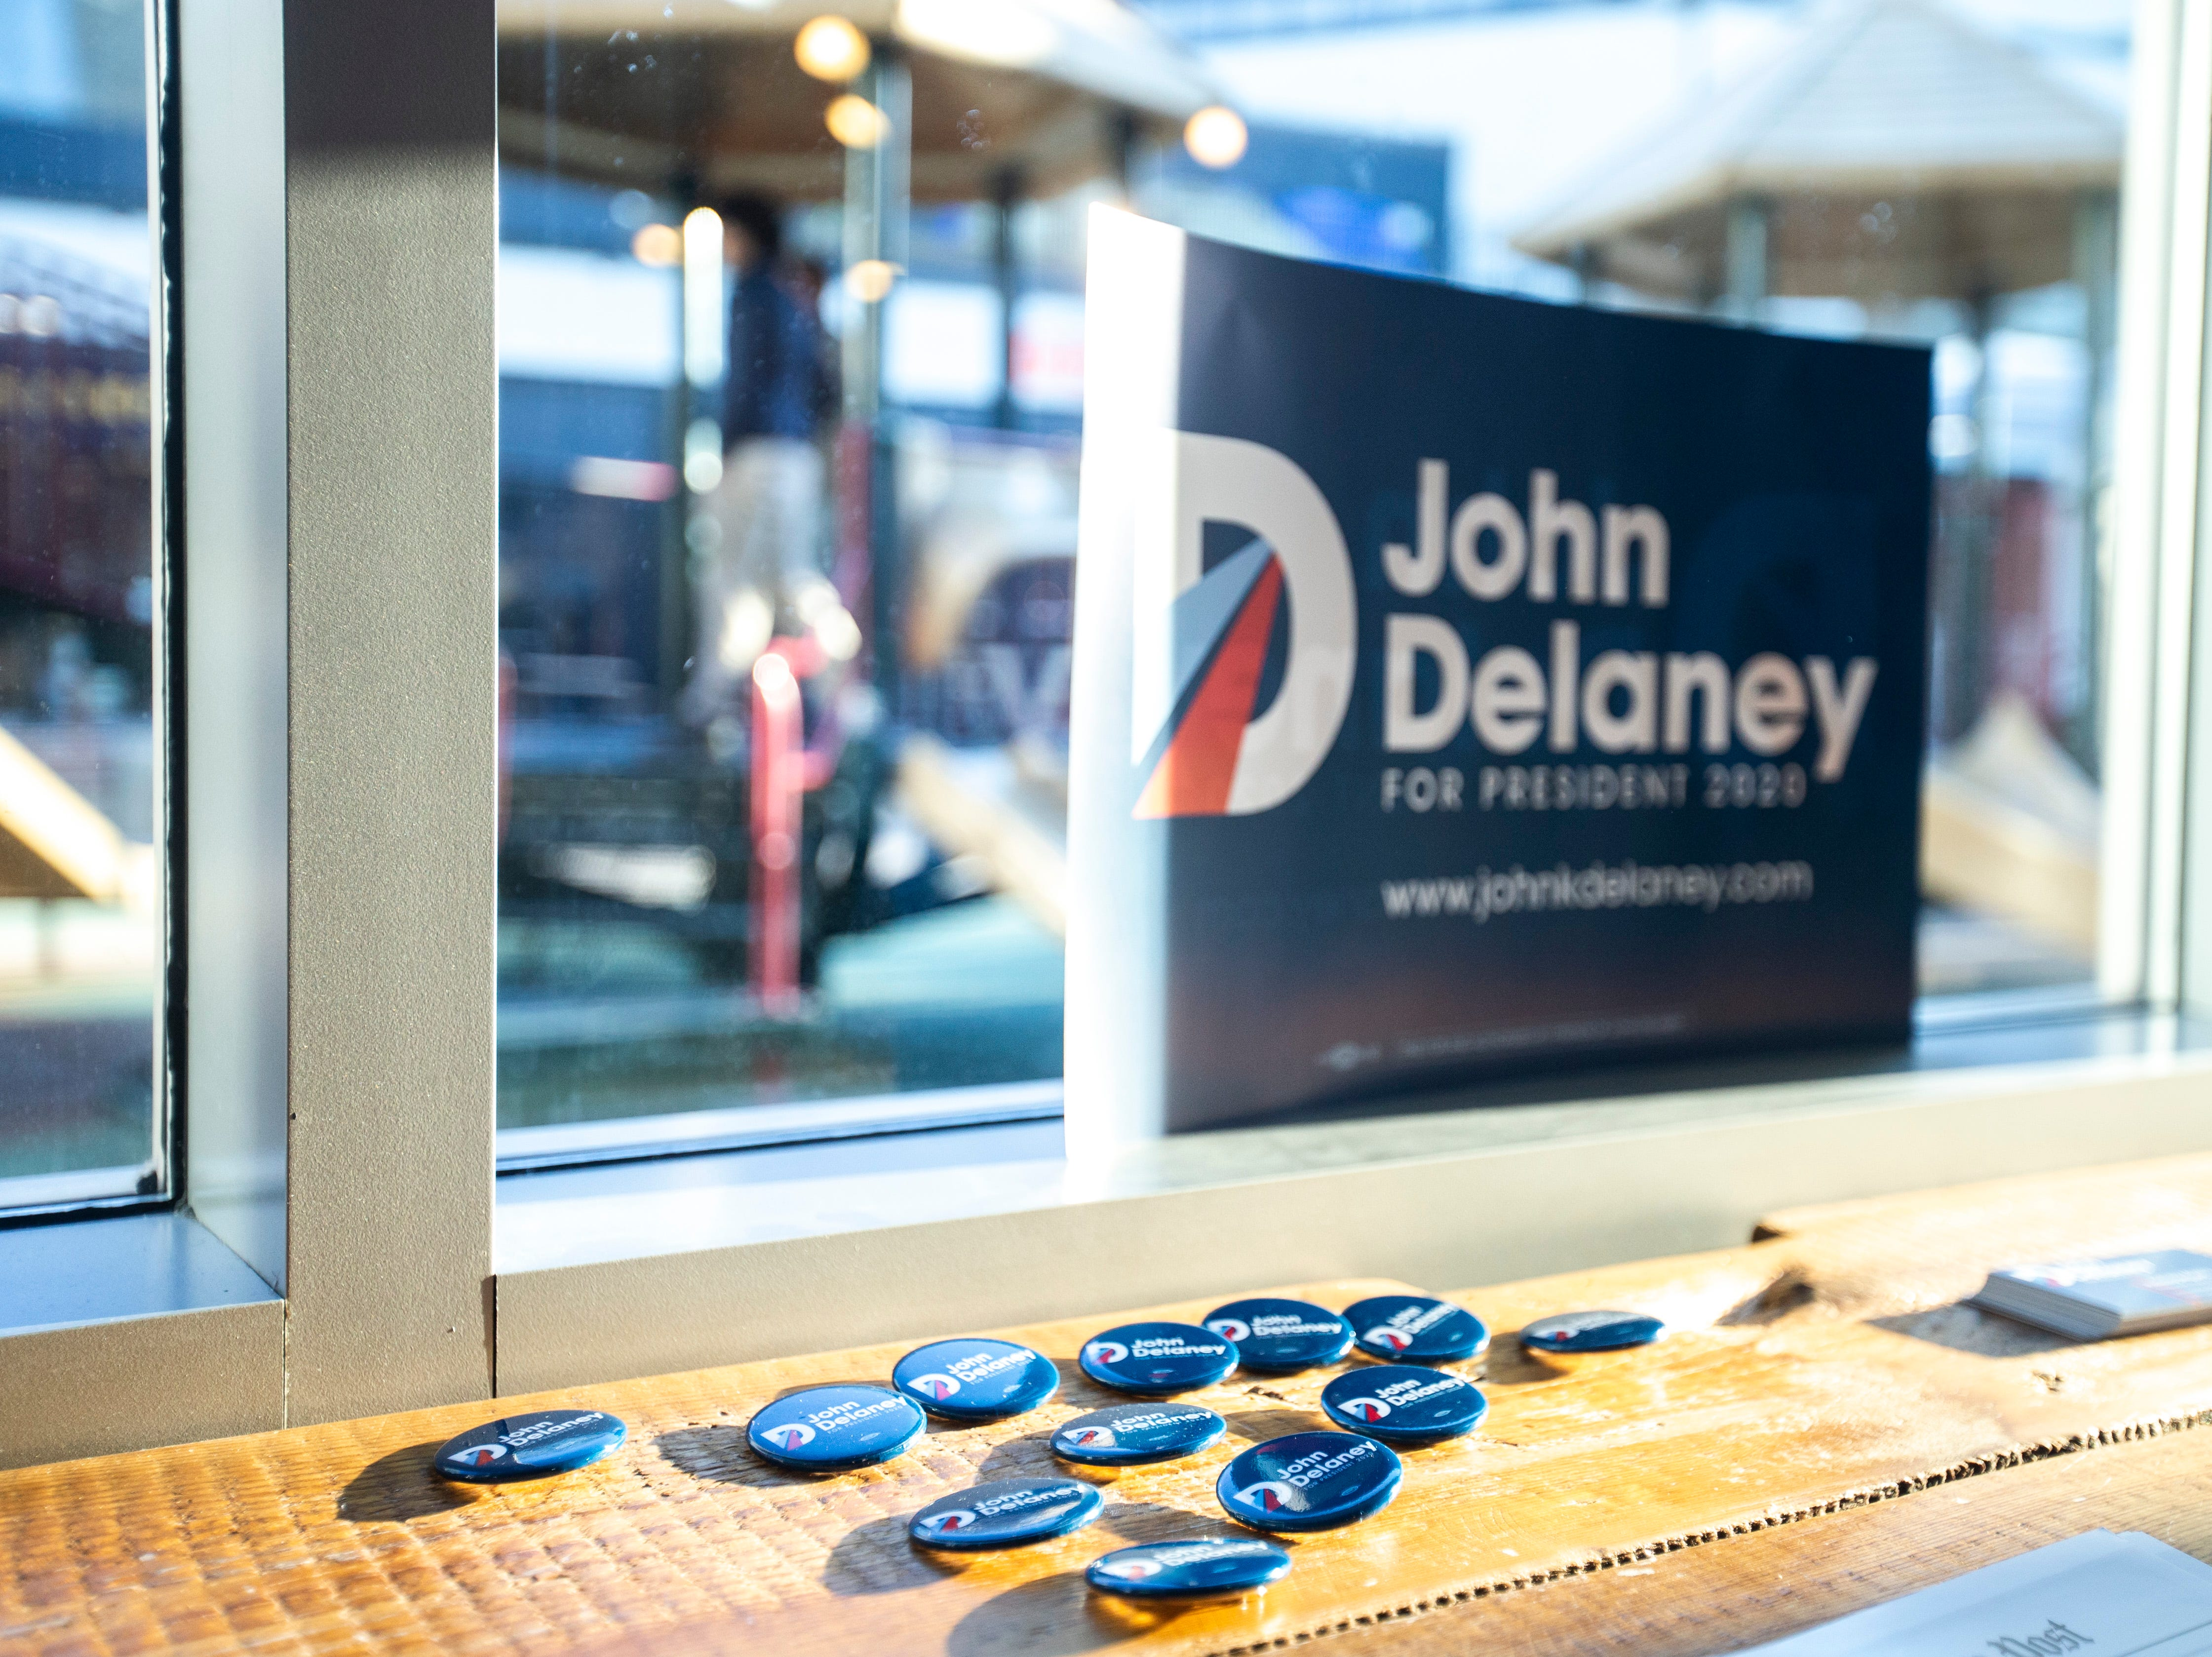 Buttons sit out for Democratic presidential candidate John Delaney during an event on Sunday, March 31, 2019, at MERGE, a coworking space in downtown Iowa City, Iowa.